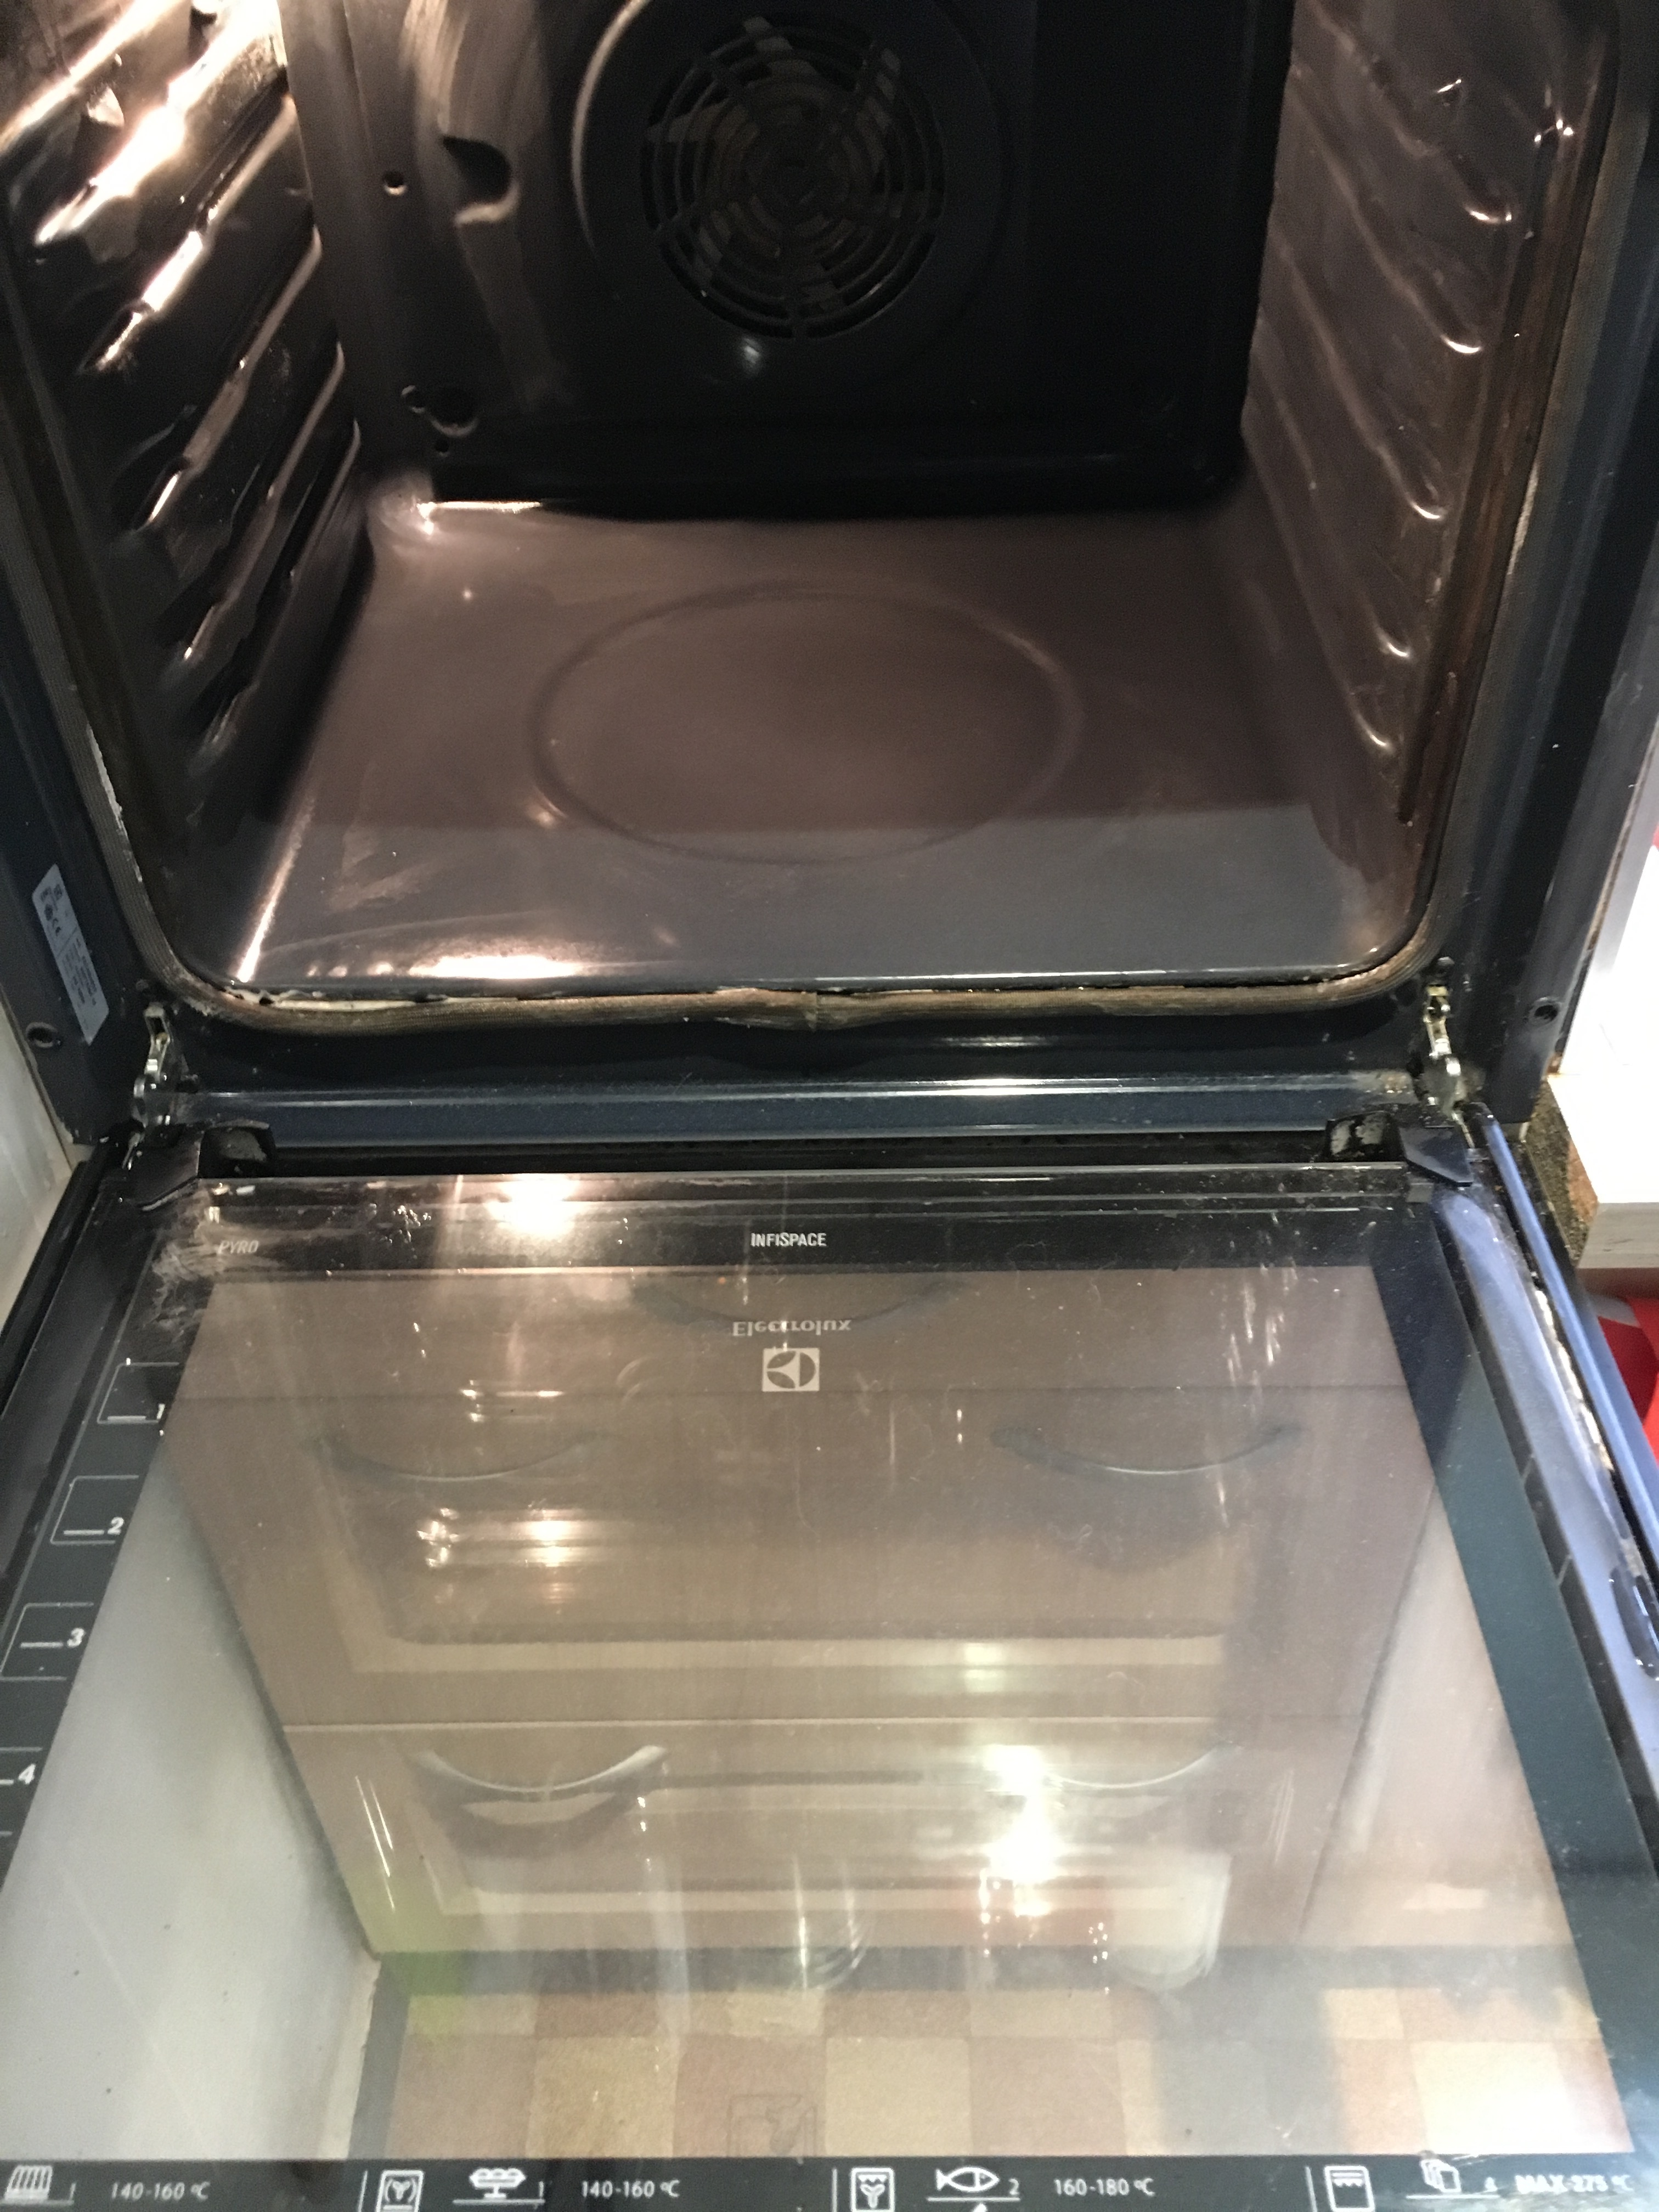 oven-cleaning-pics